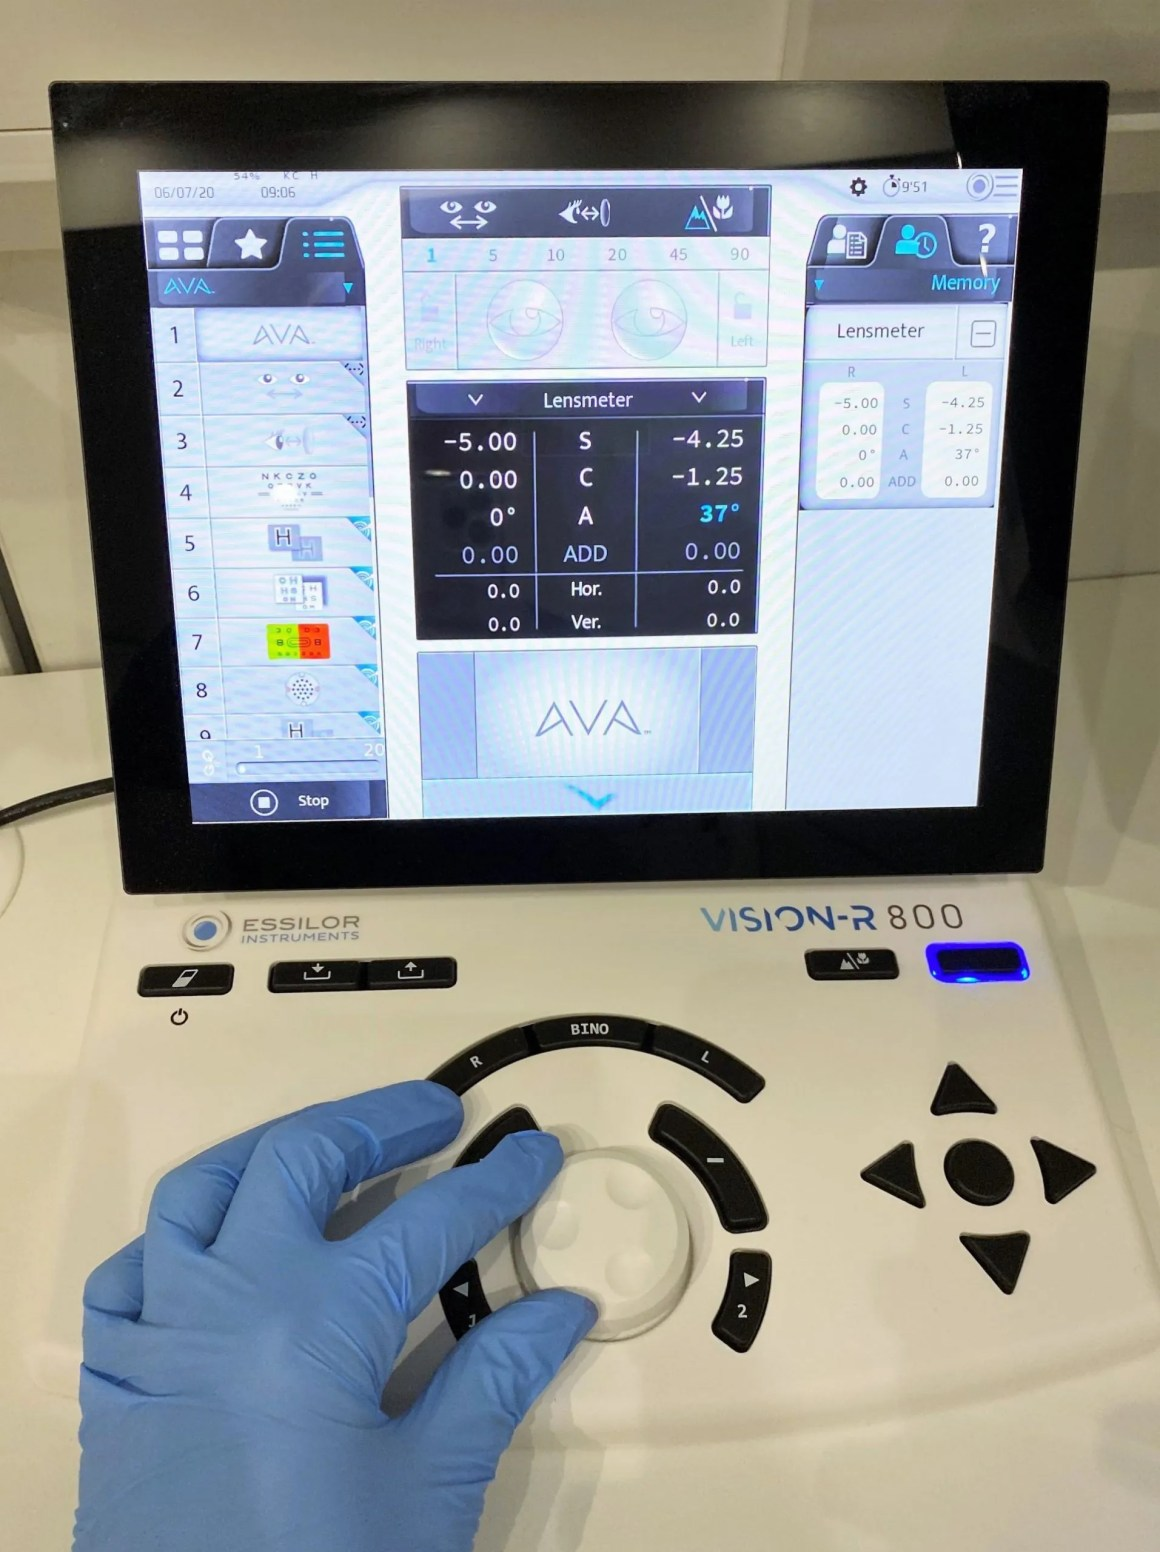 Essilor phoropter console